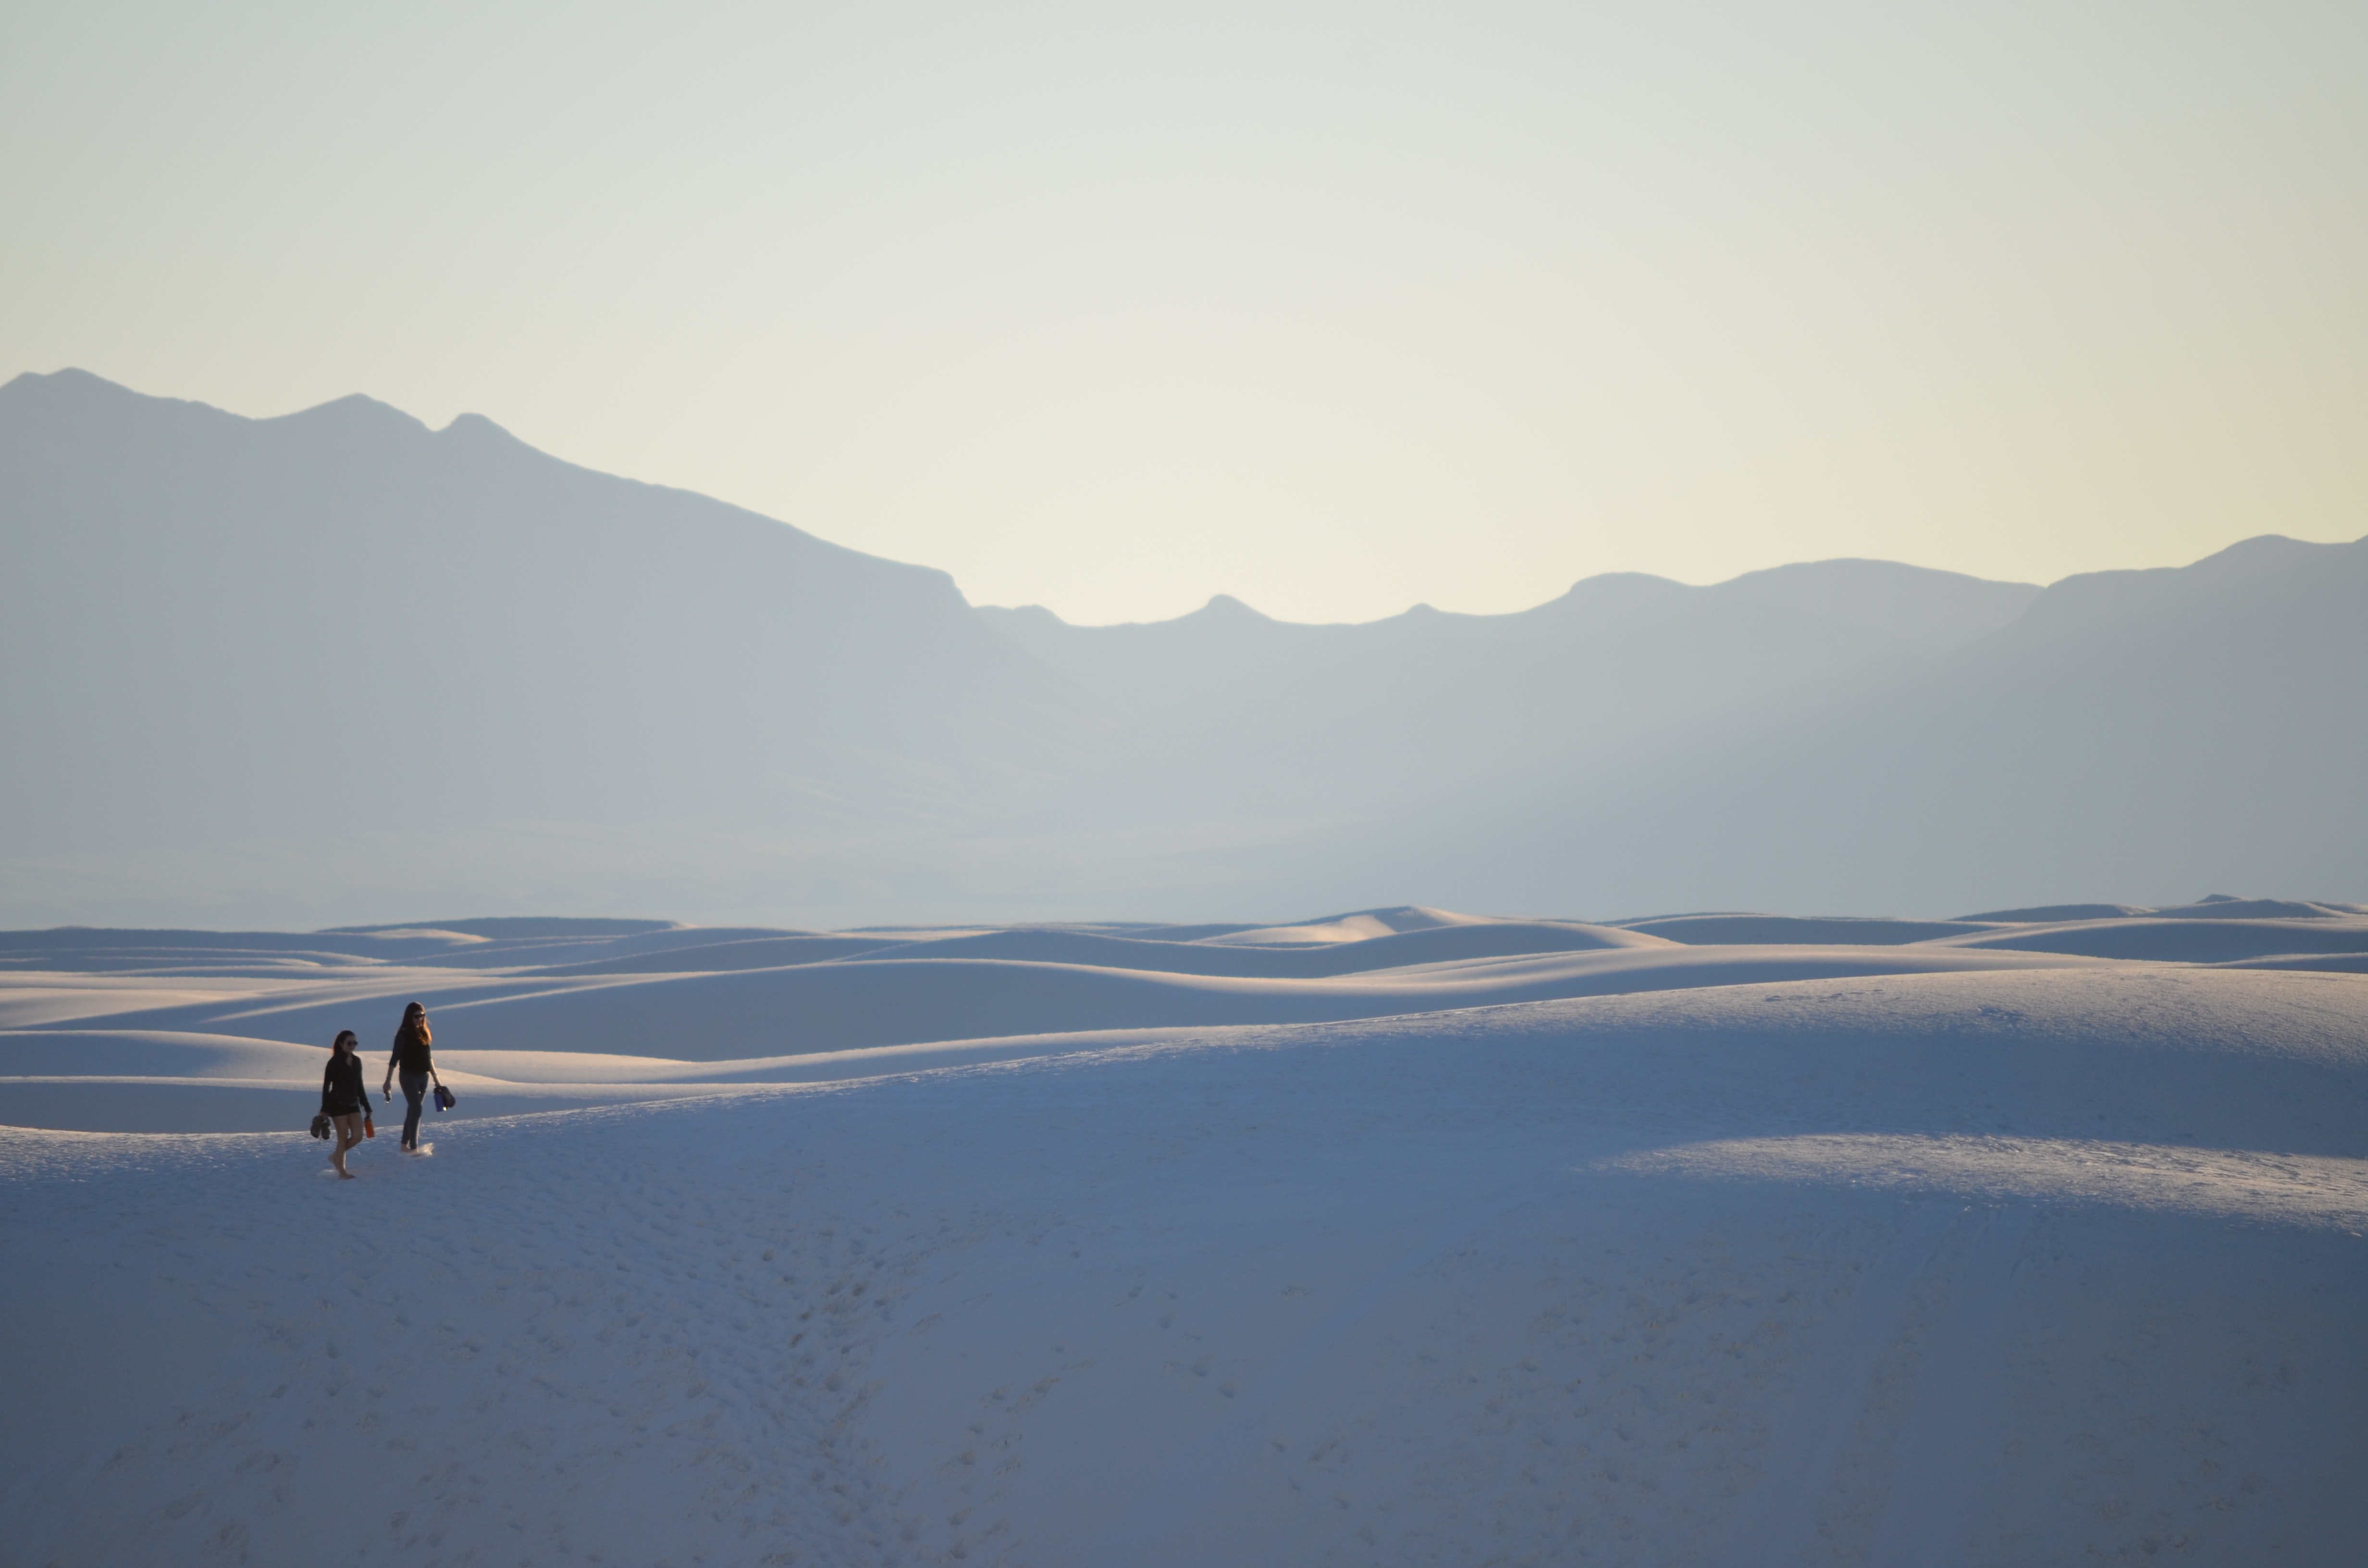 Two people hike through dunes in White Sands National Monument